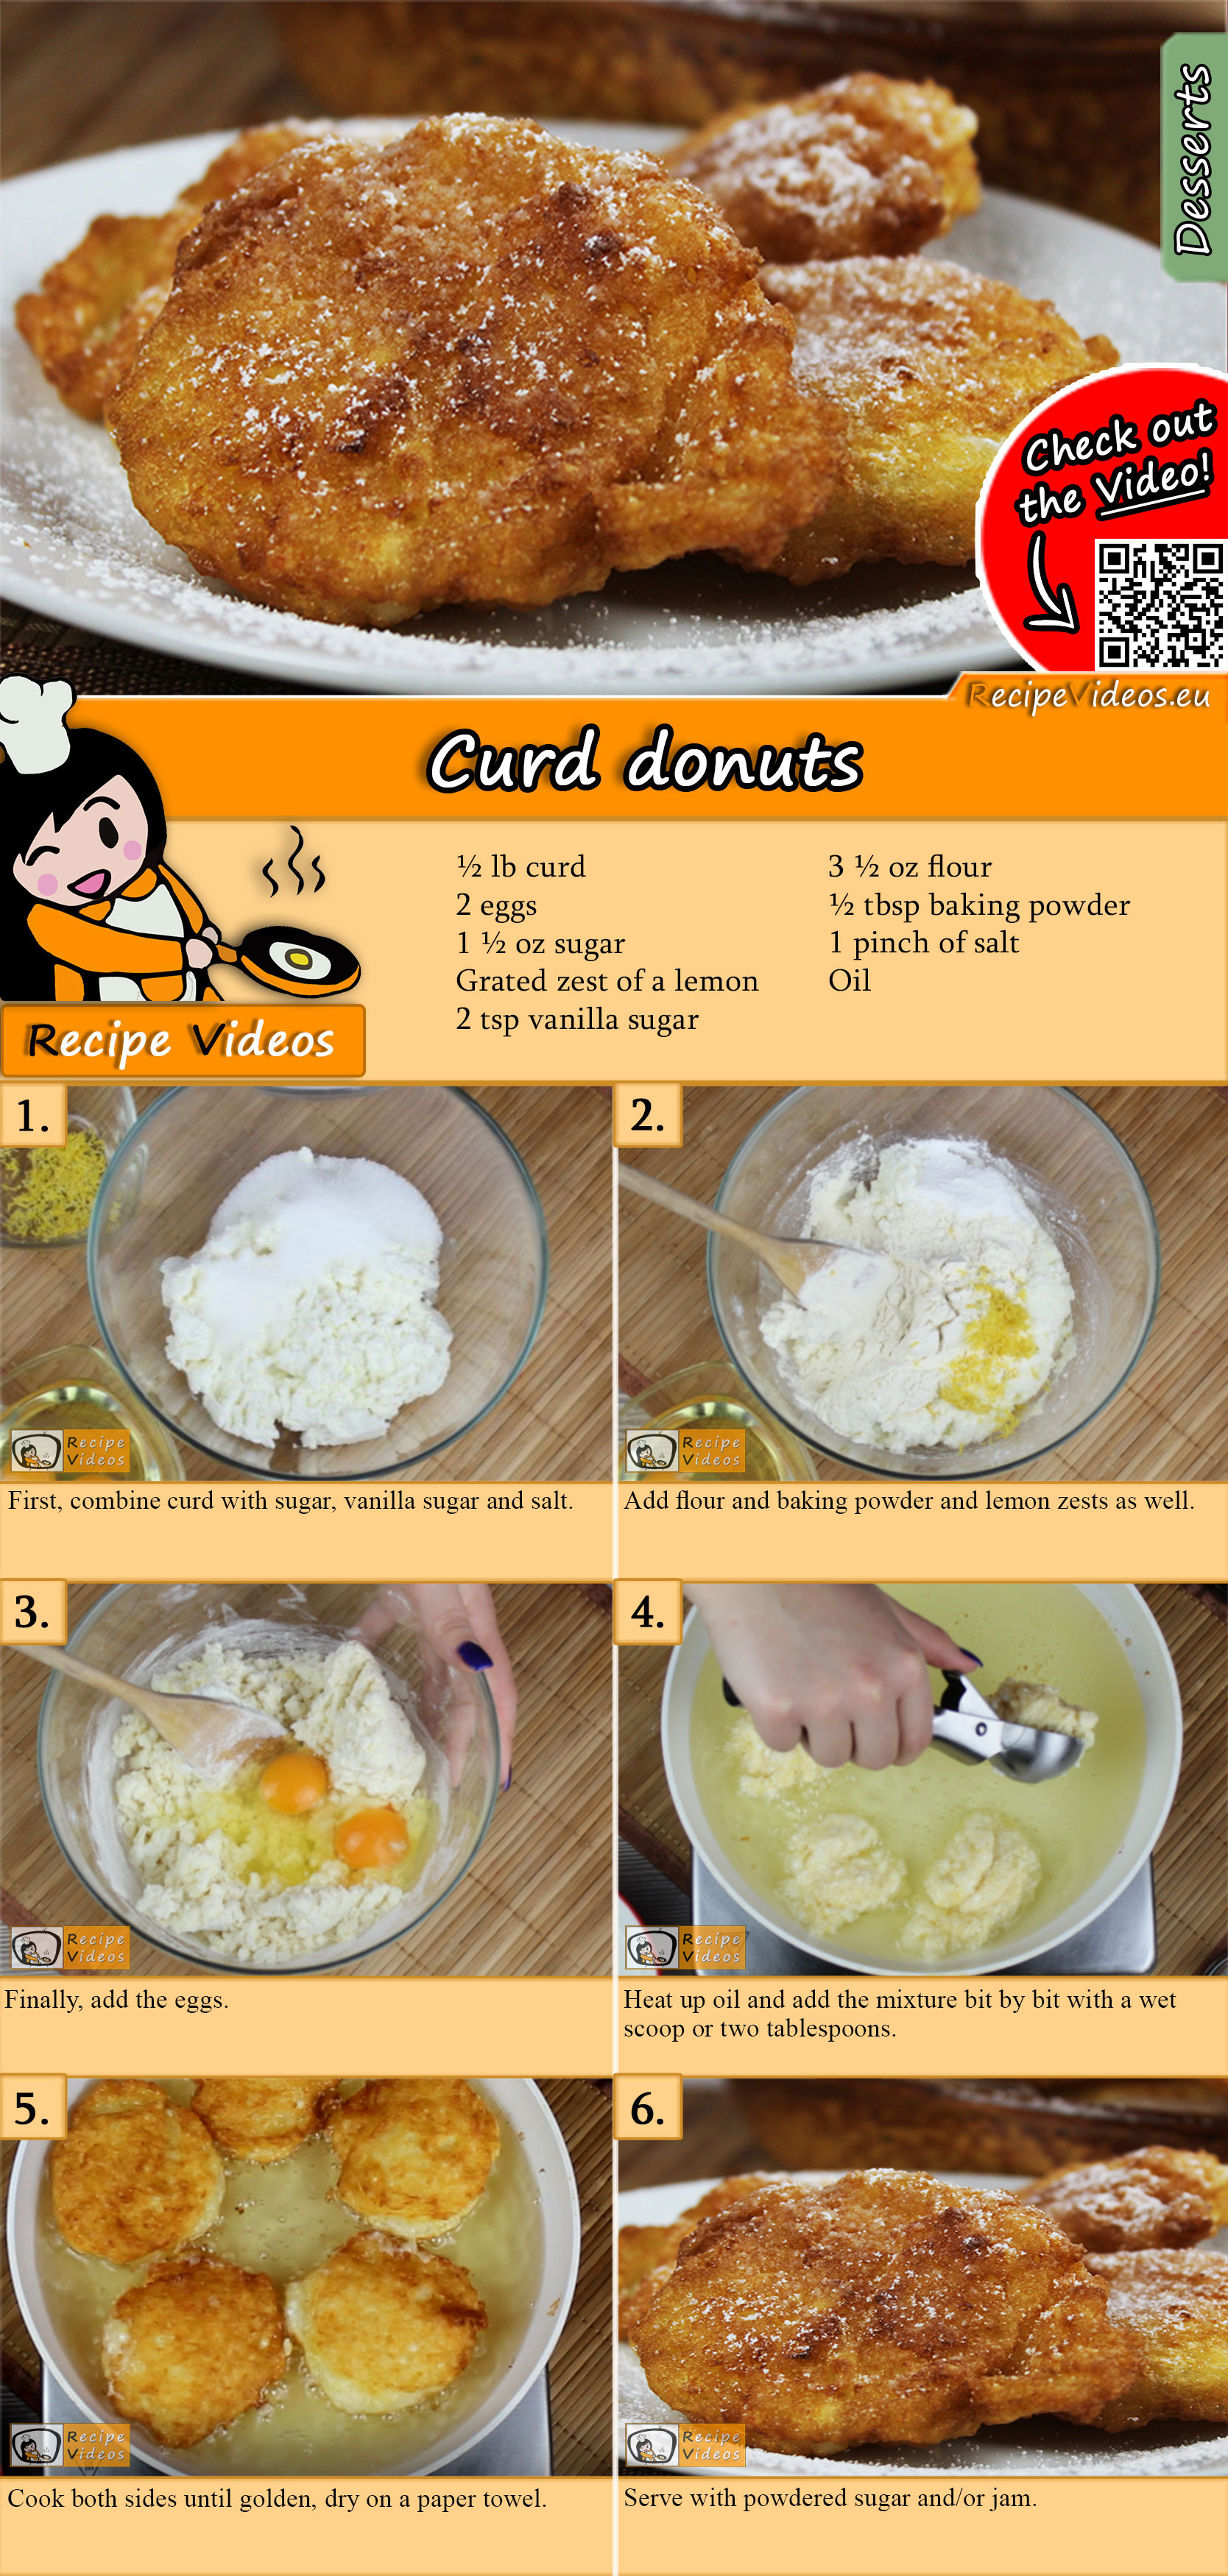 Curd donuts recipe with video